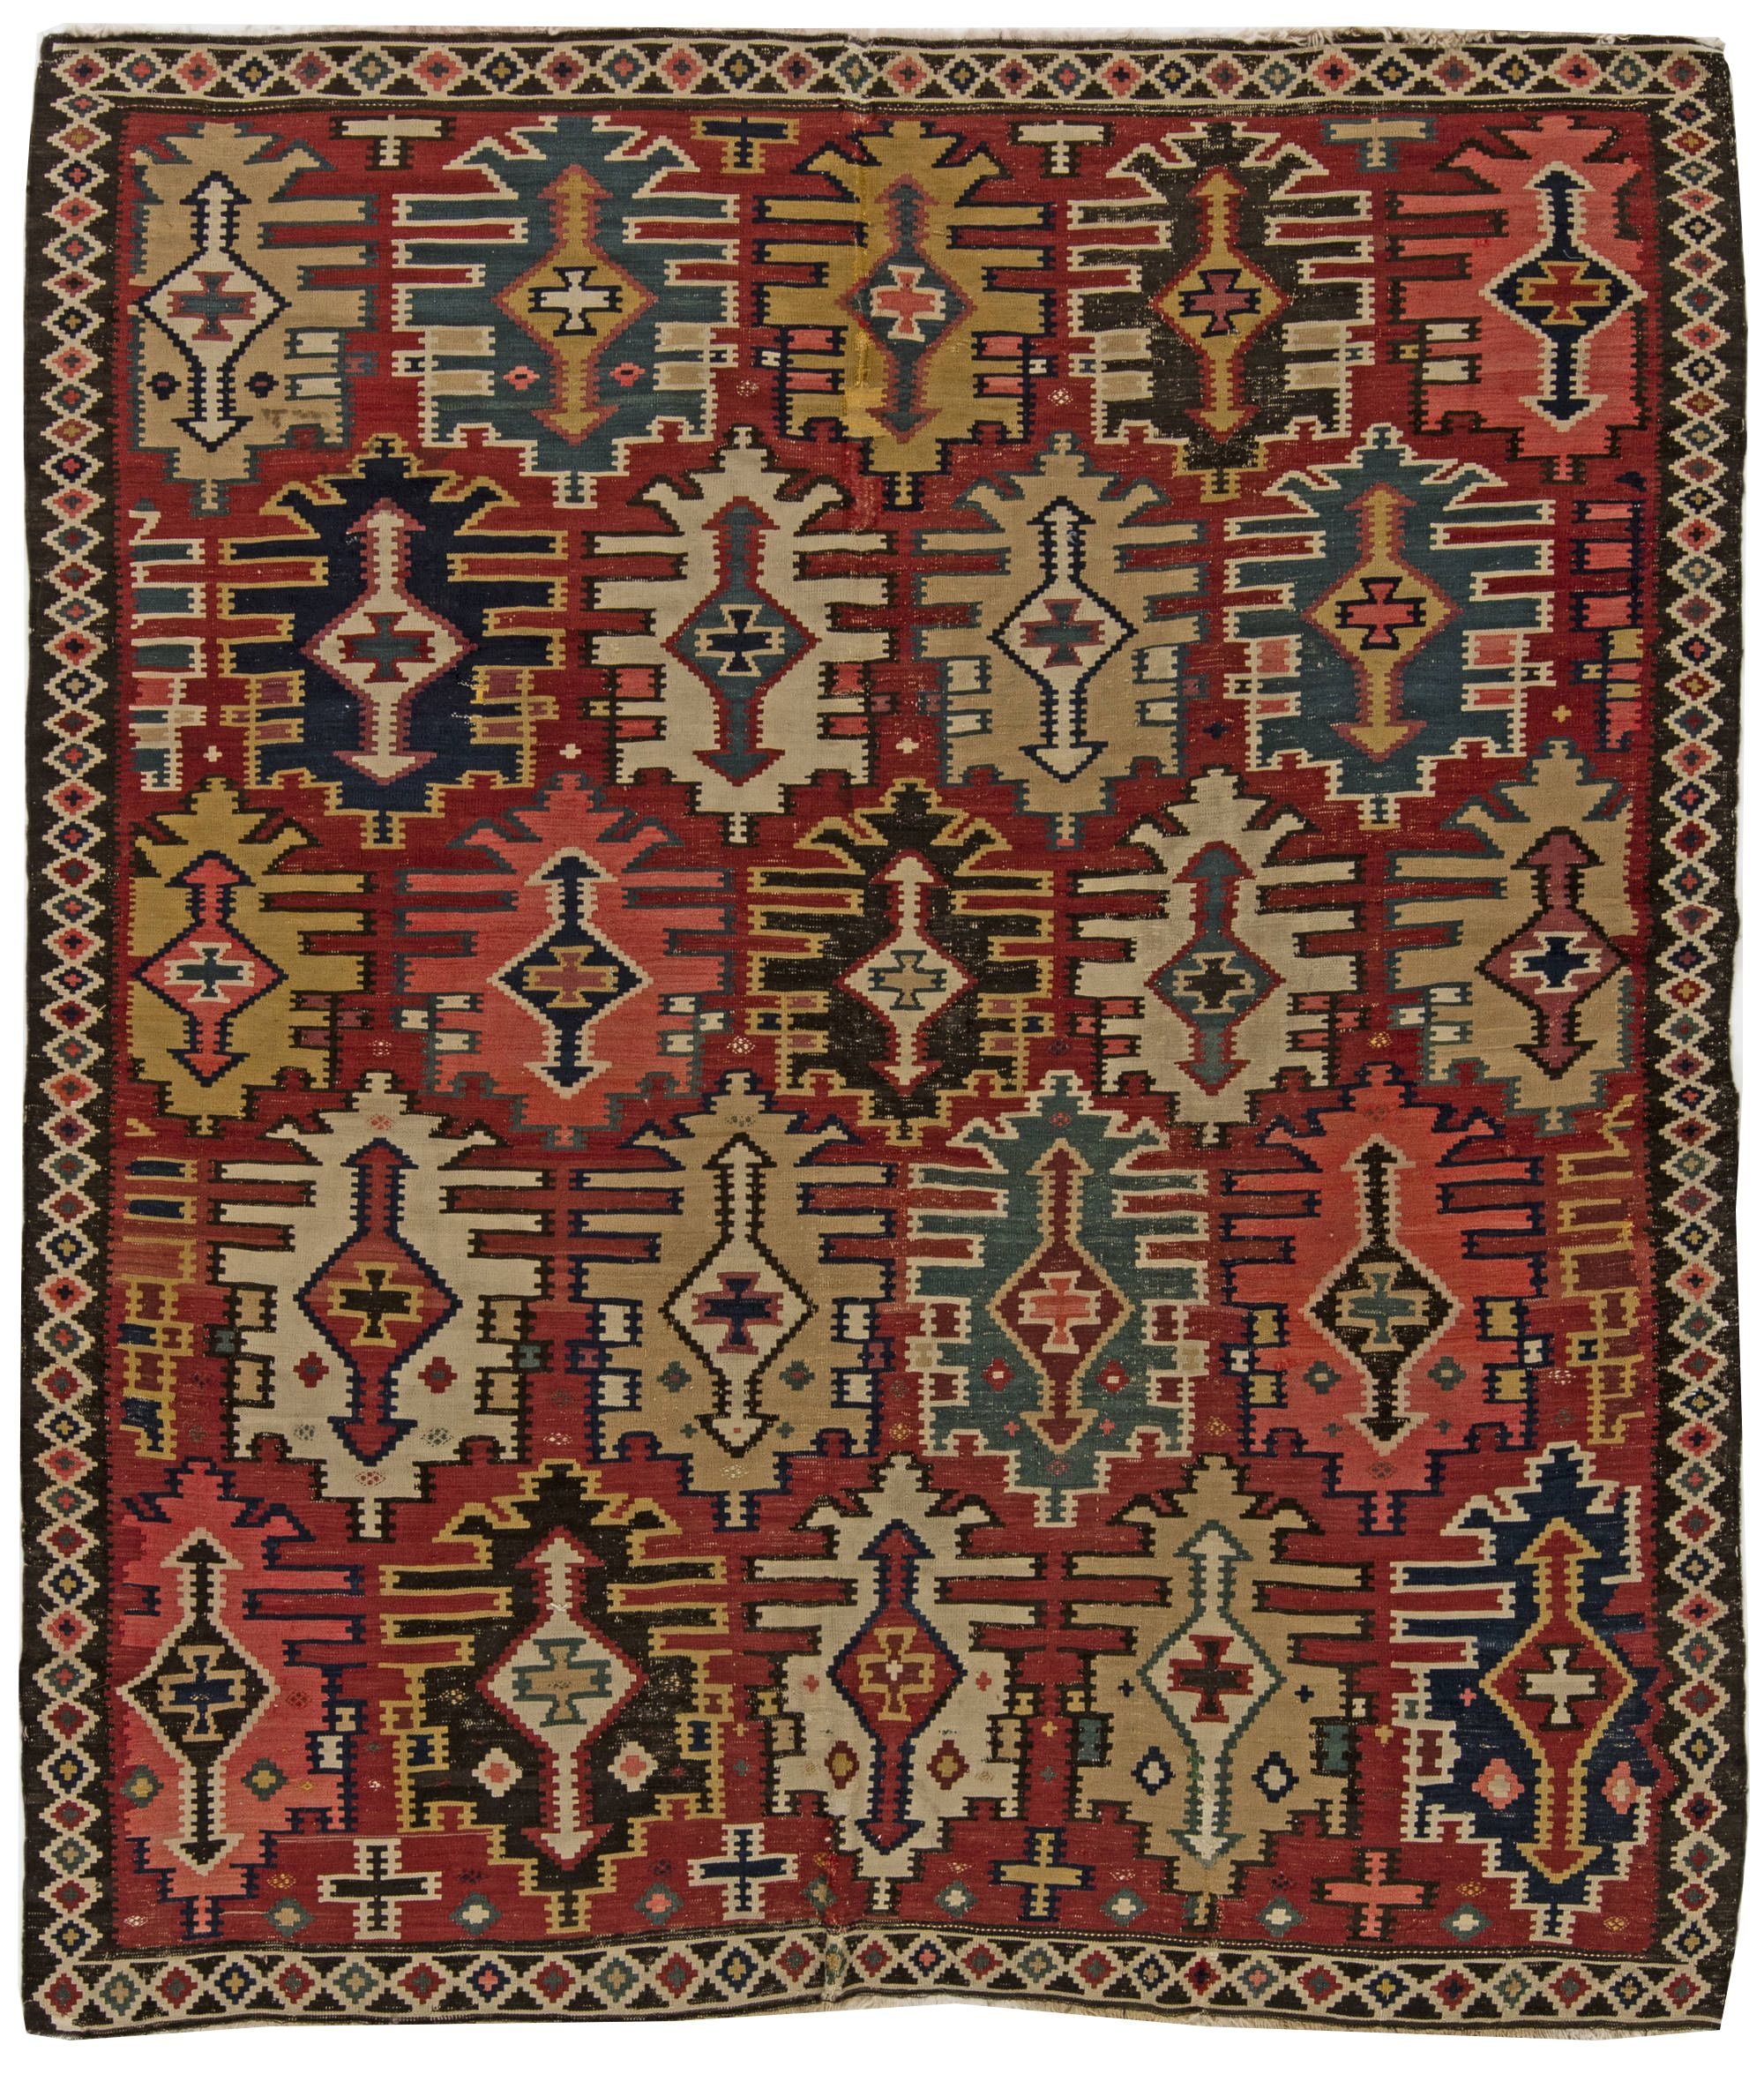 vintage turkish kilim rug bb6268 by doris leslie blau carpet design kilims and woven rug. Black Bedroom Furniture Sets. Home Design Ideas